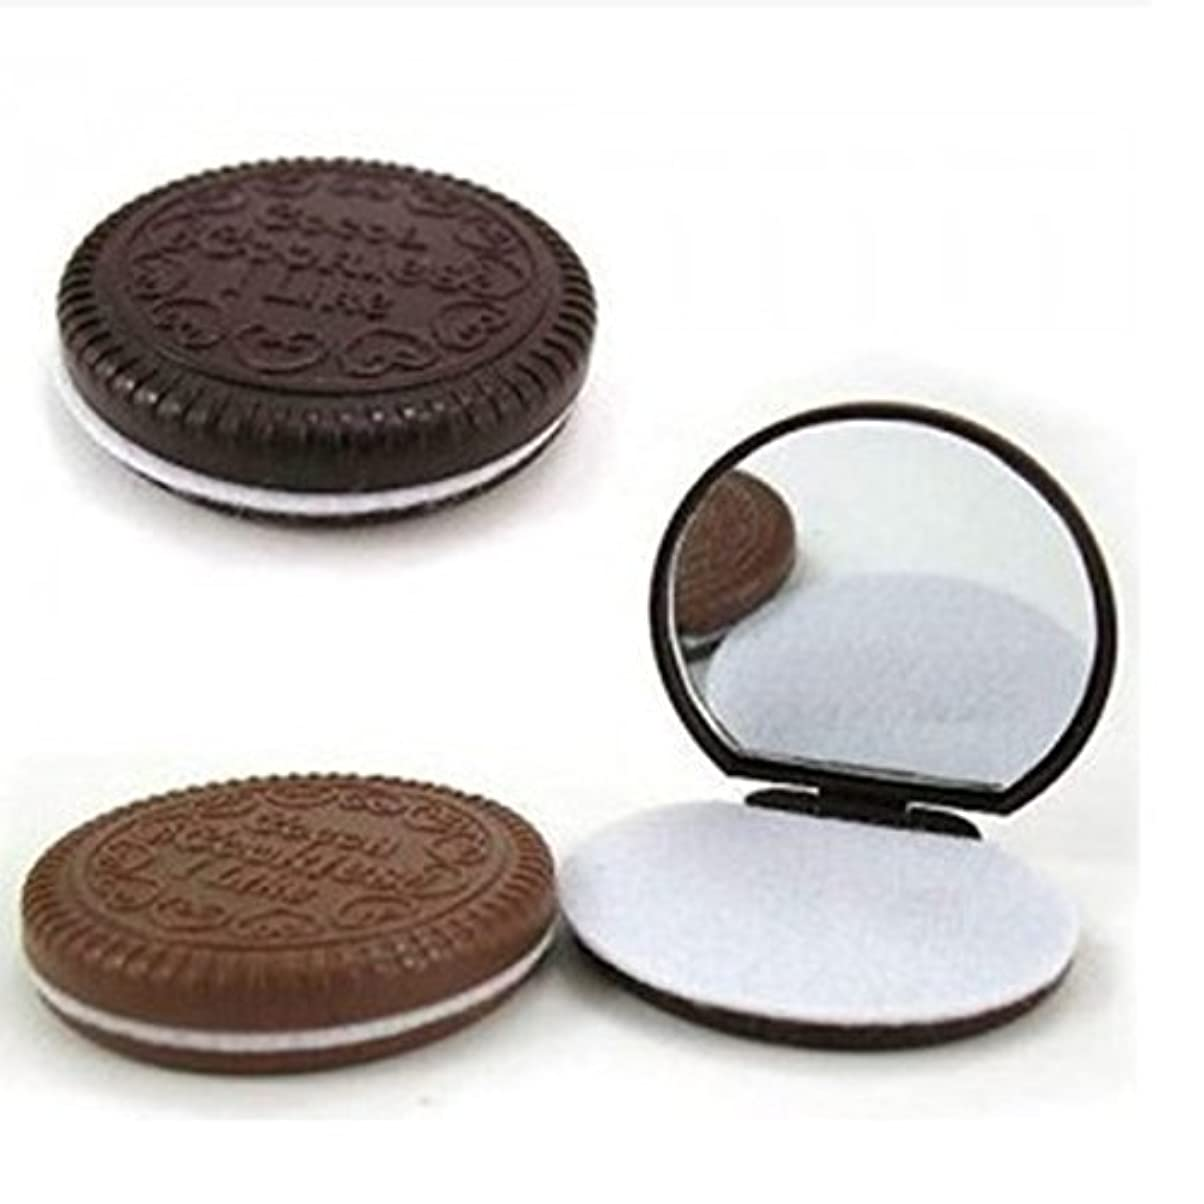 勃起悪化させる機関車3 Pcs Cute Chocolate Makeup Mirror With Comb Women Hand Pocket Compact Makeup Tools Great Gift [並行輸入品]